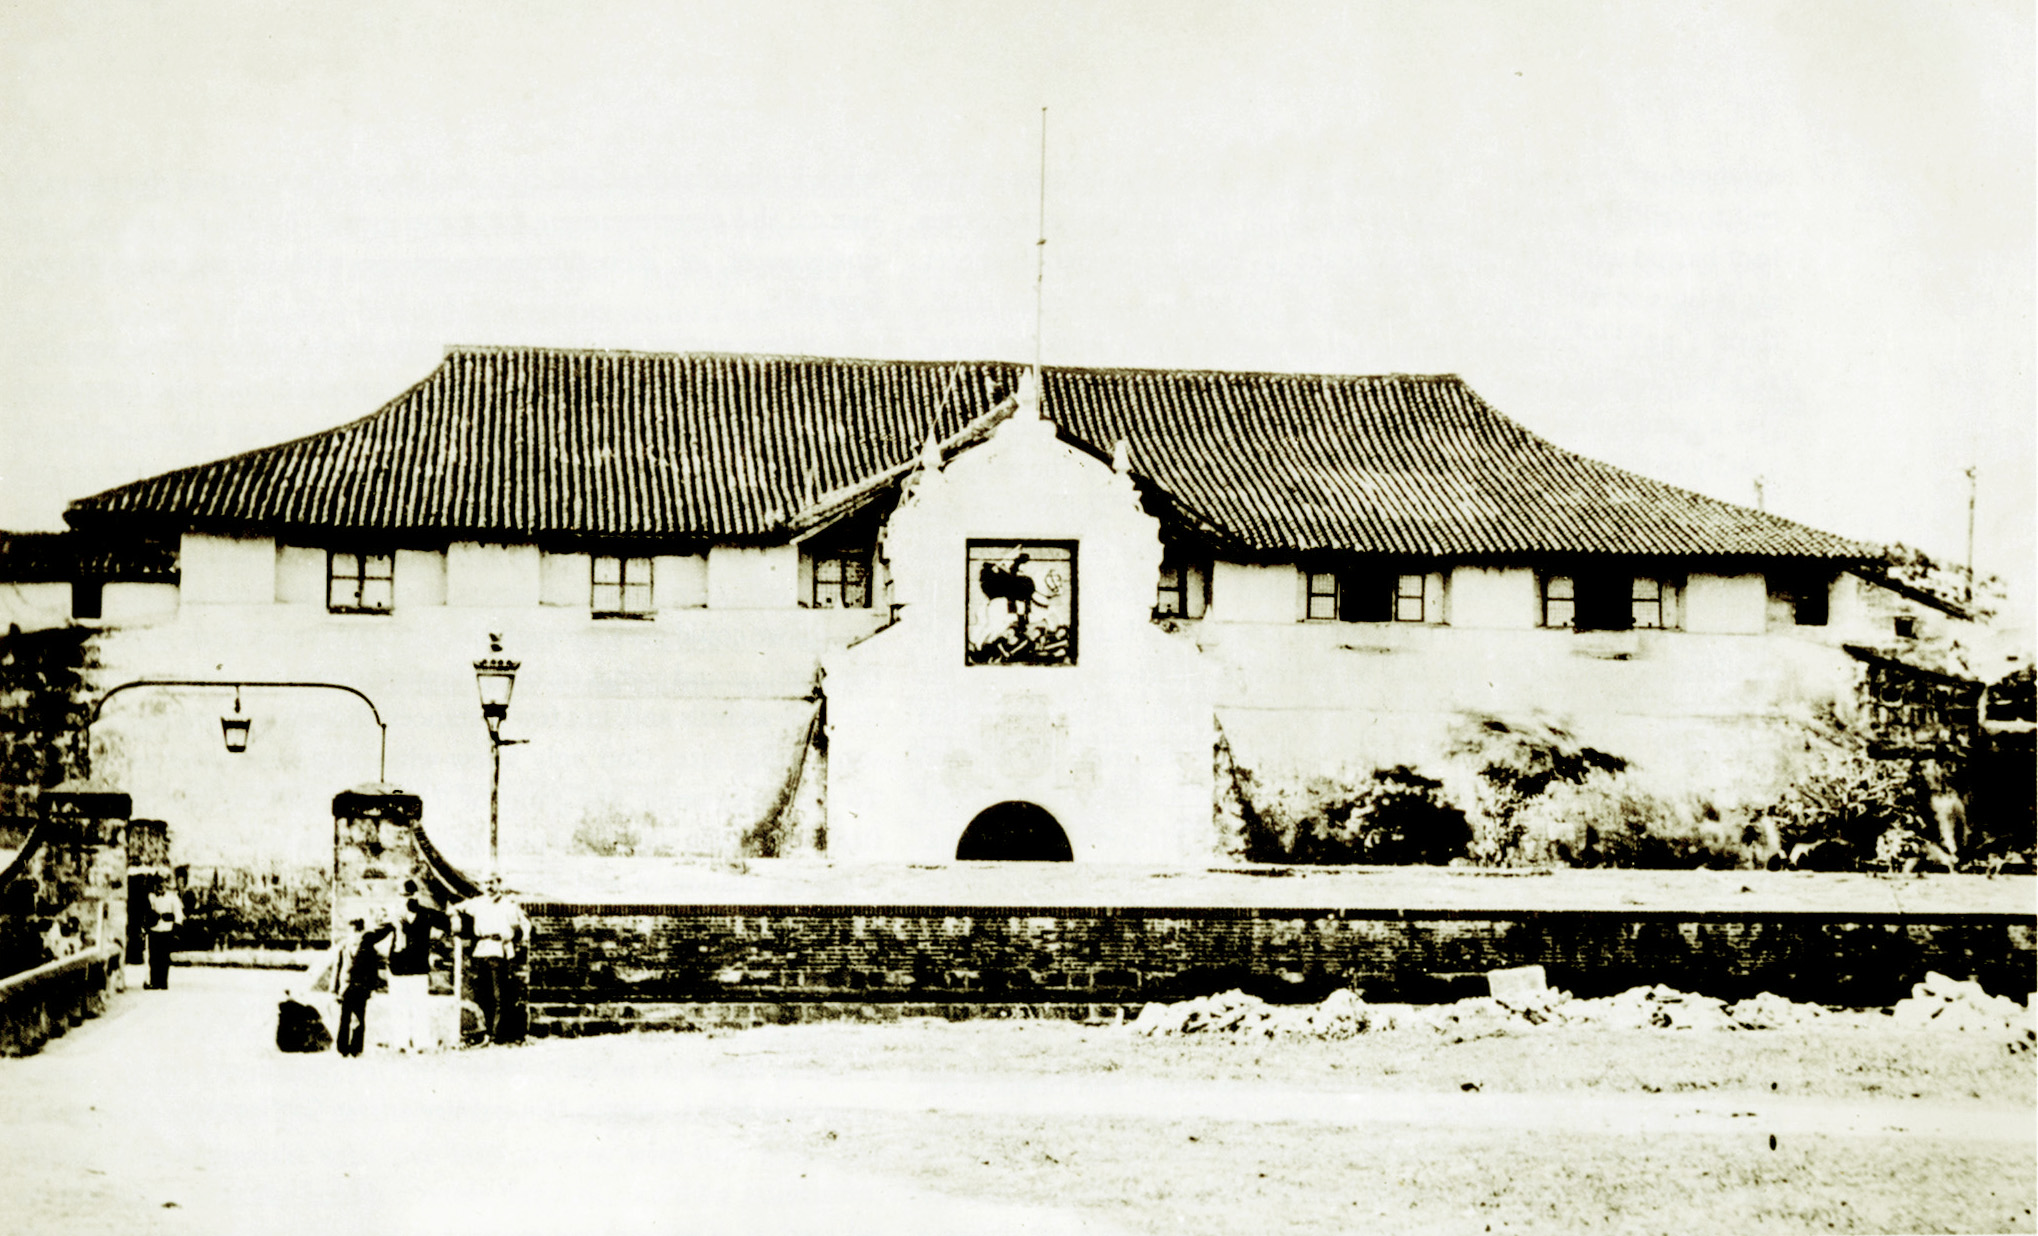 The main gateway to Fort Santiago, Manila, as seen in 1880. The building was destroyed during the July 1880 earthquake that affected Luzon Island.